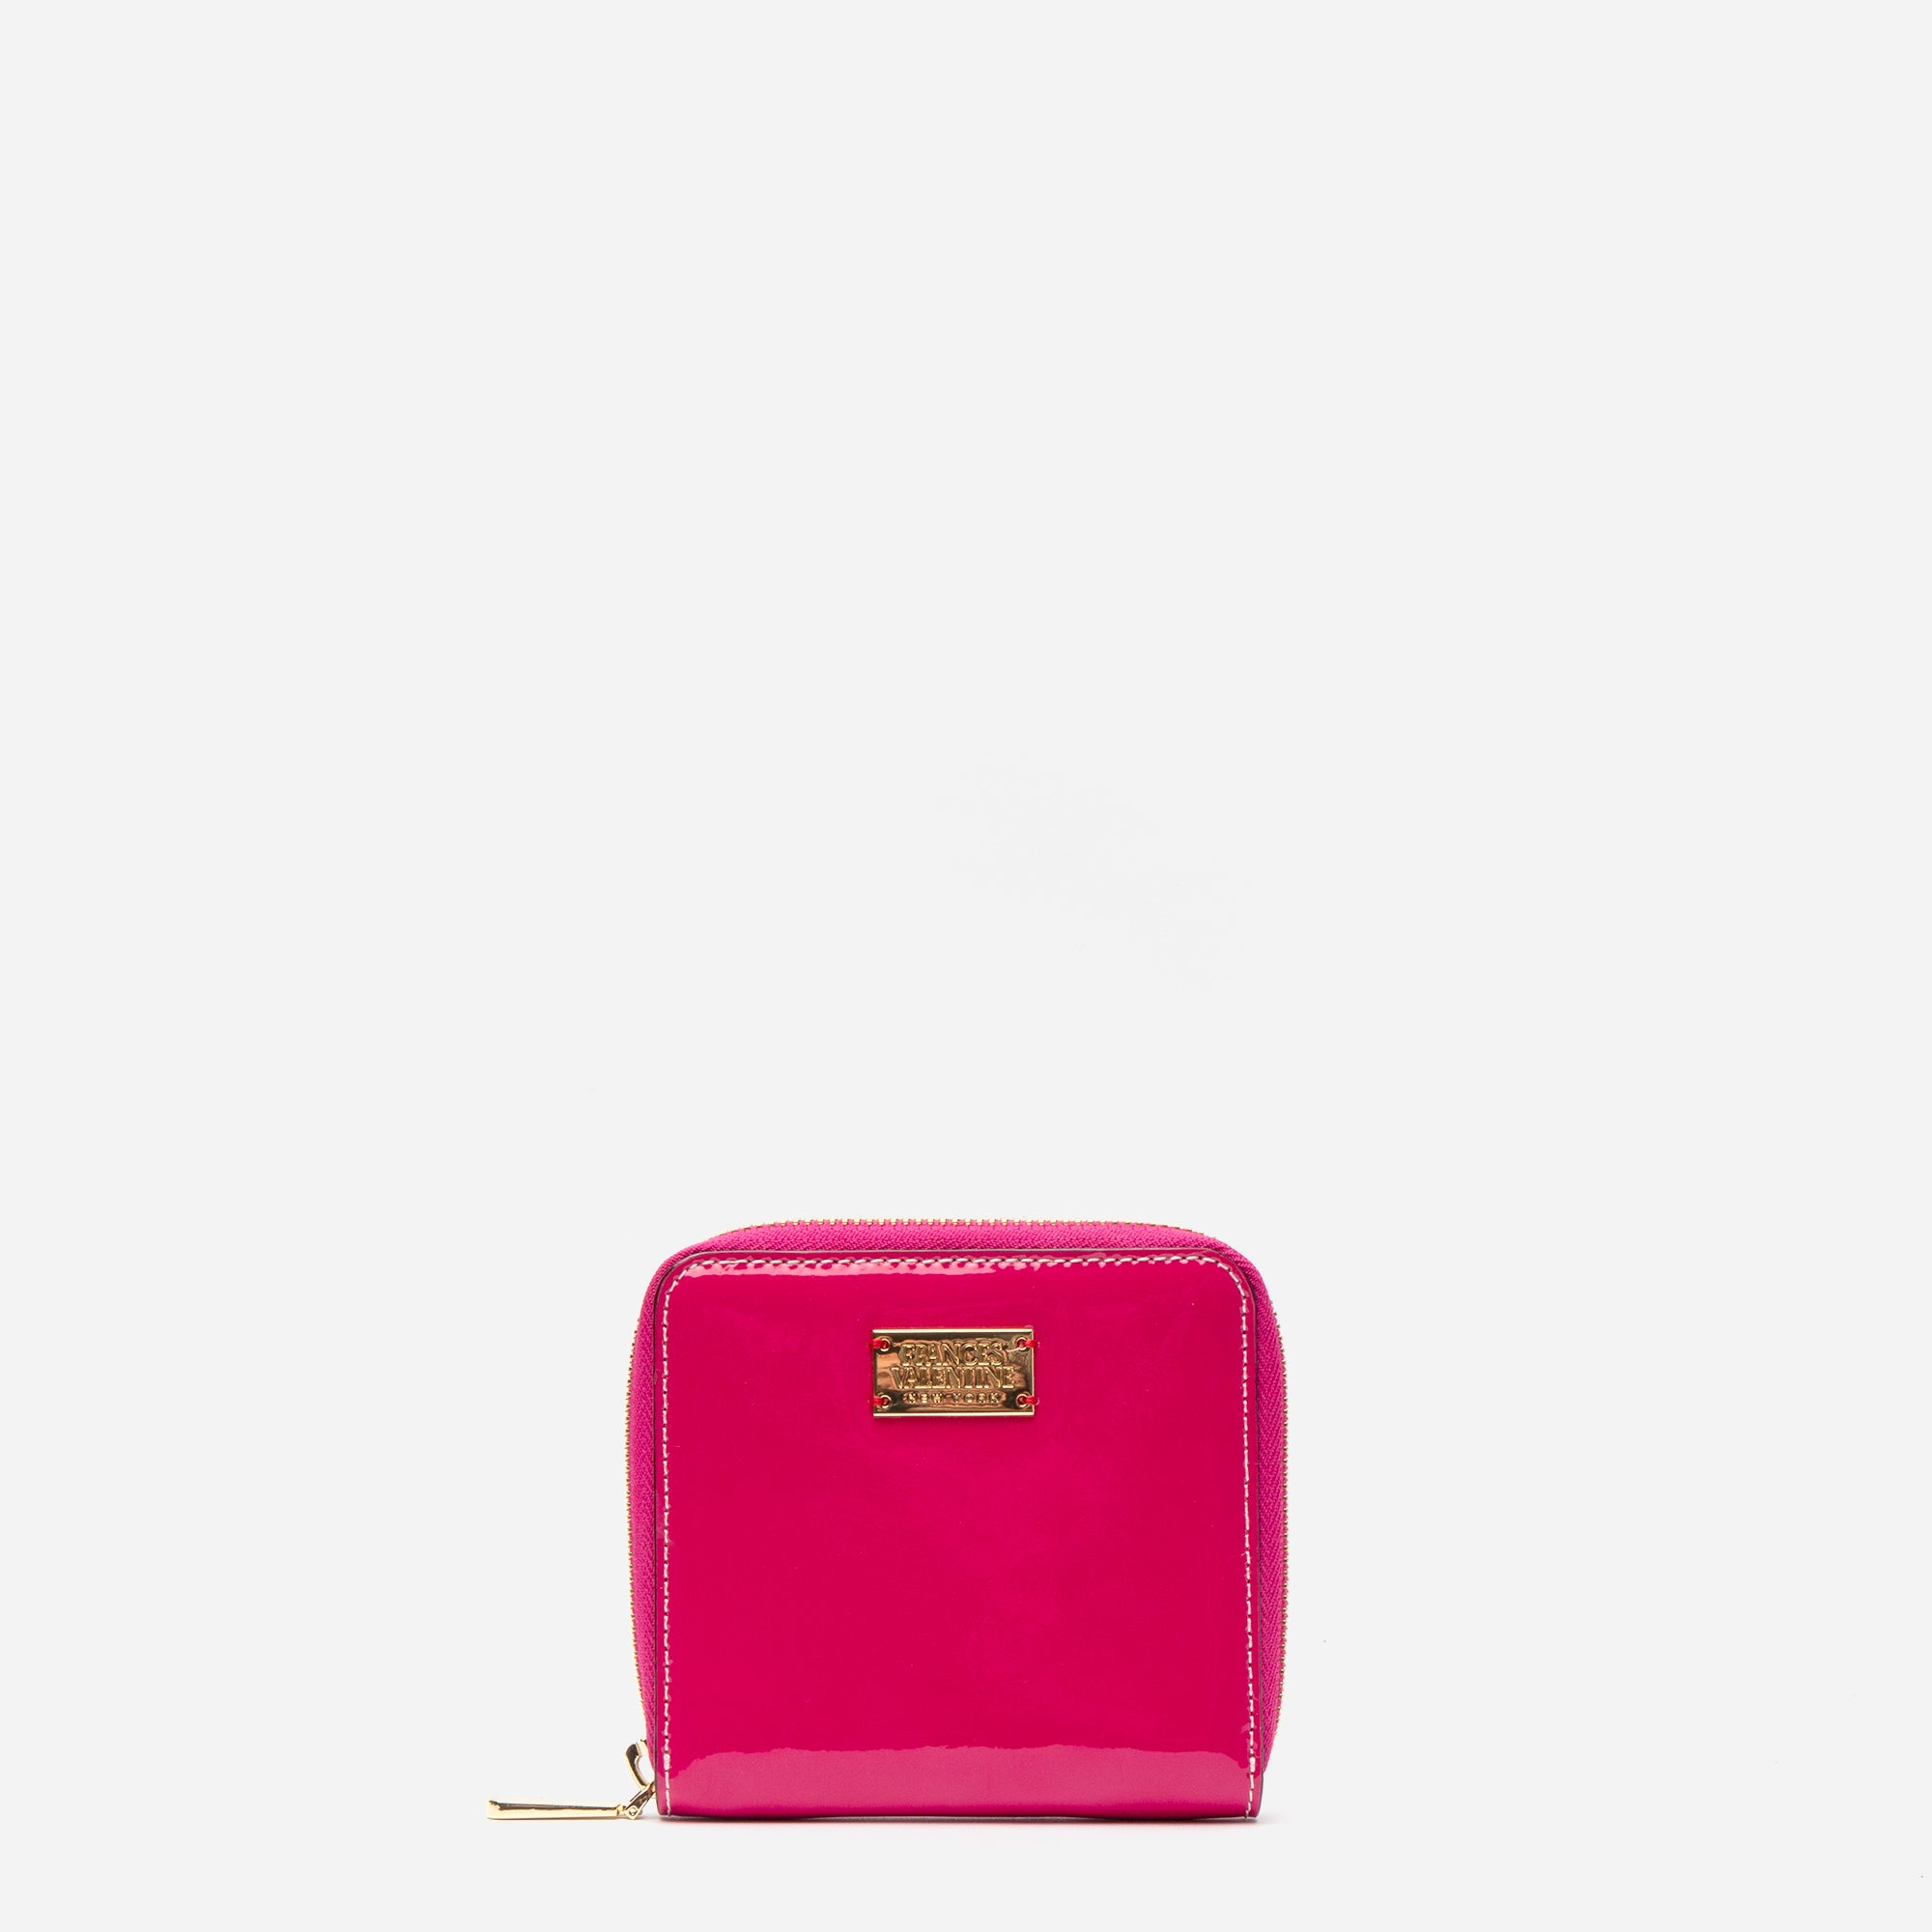 Roosevelt Small Zip Wallet Soft Patent Pink Oyster